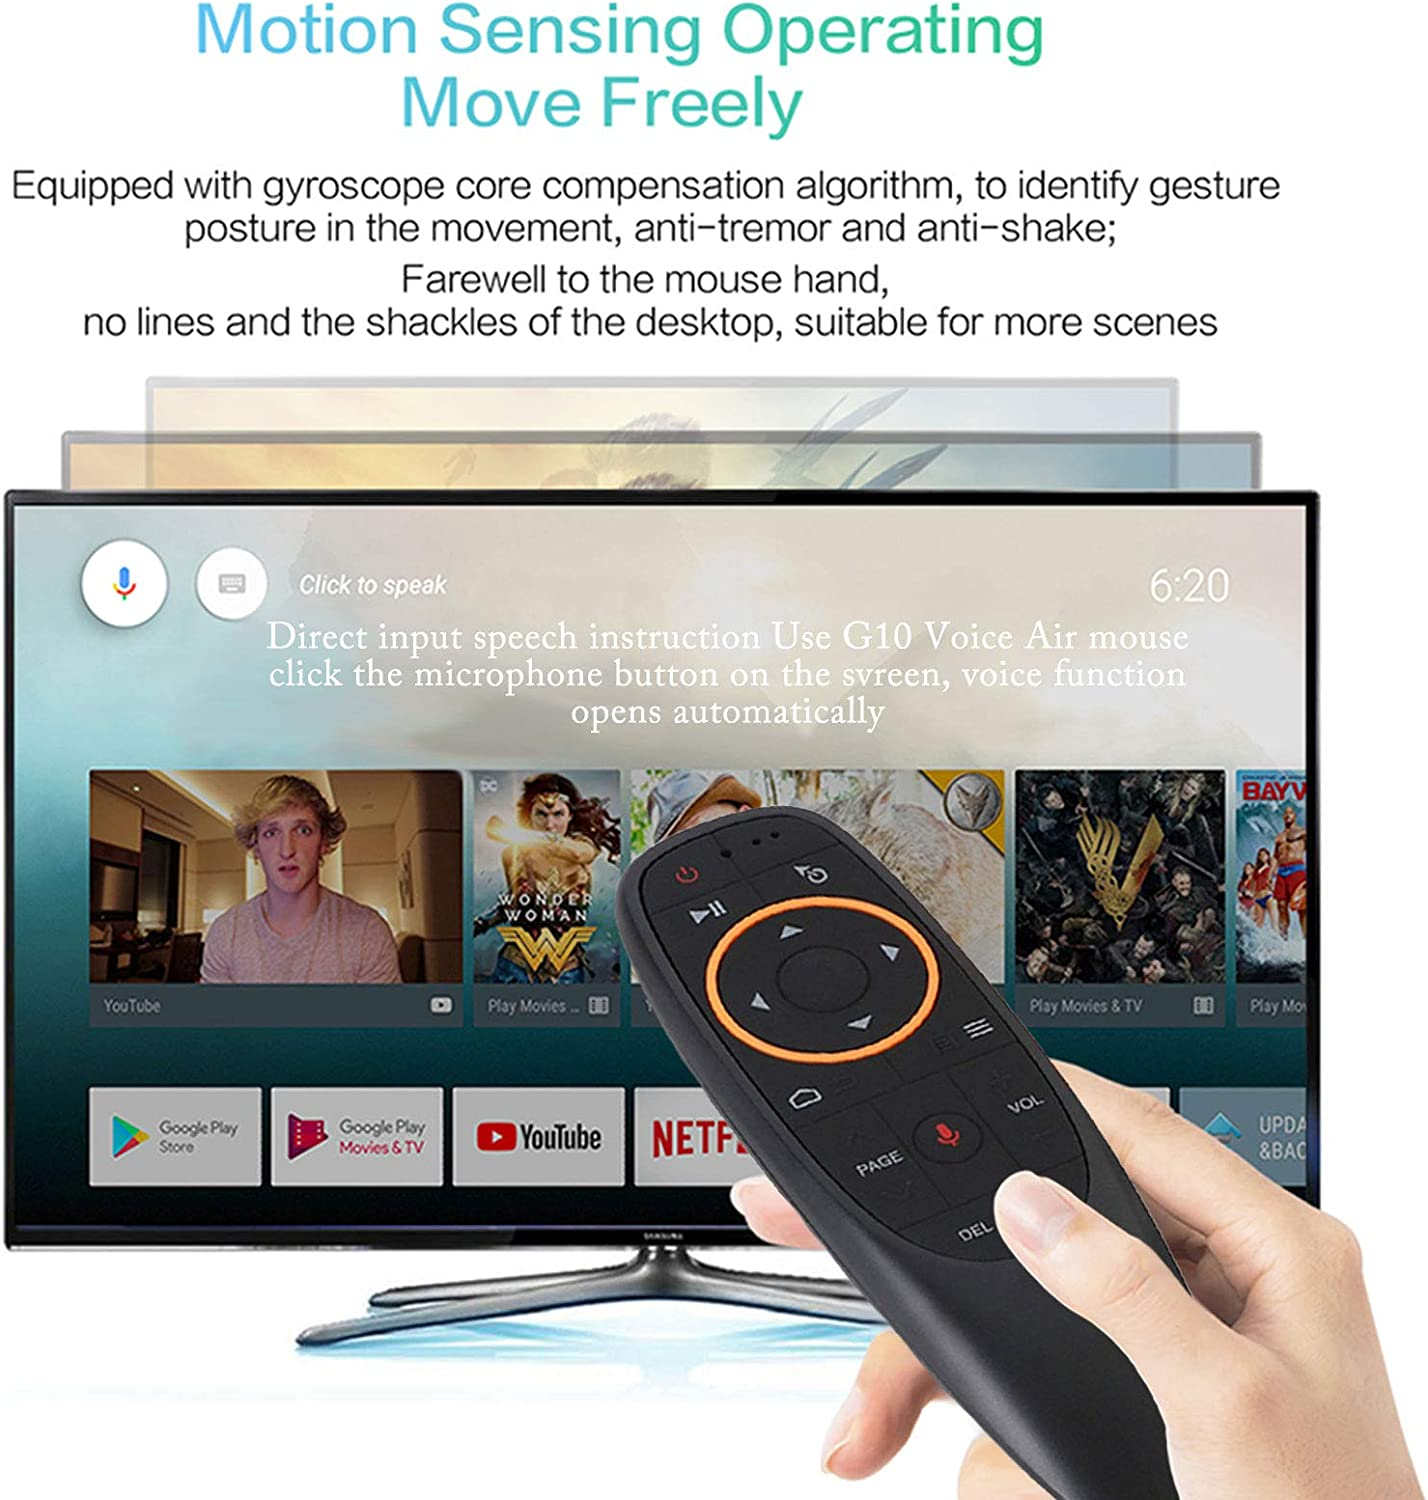 USB Receiver Universal Mini Keyboard Combo Without Backlit Voice Remote Control EASYTONE G10 Air Mouse 2.4G Fly Mouse 6 Axis Gyroscope Sensing Mini Wireless Keyboard for Android TV Box Windows PC